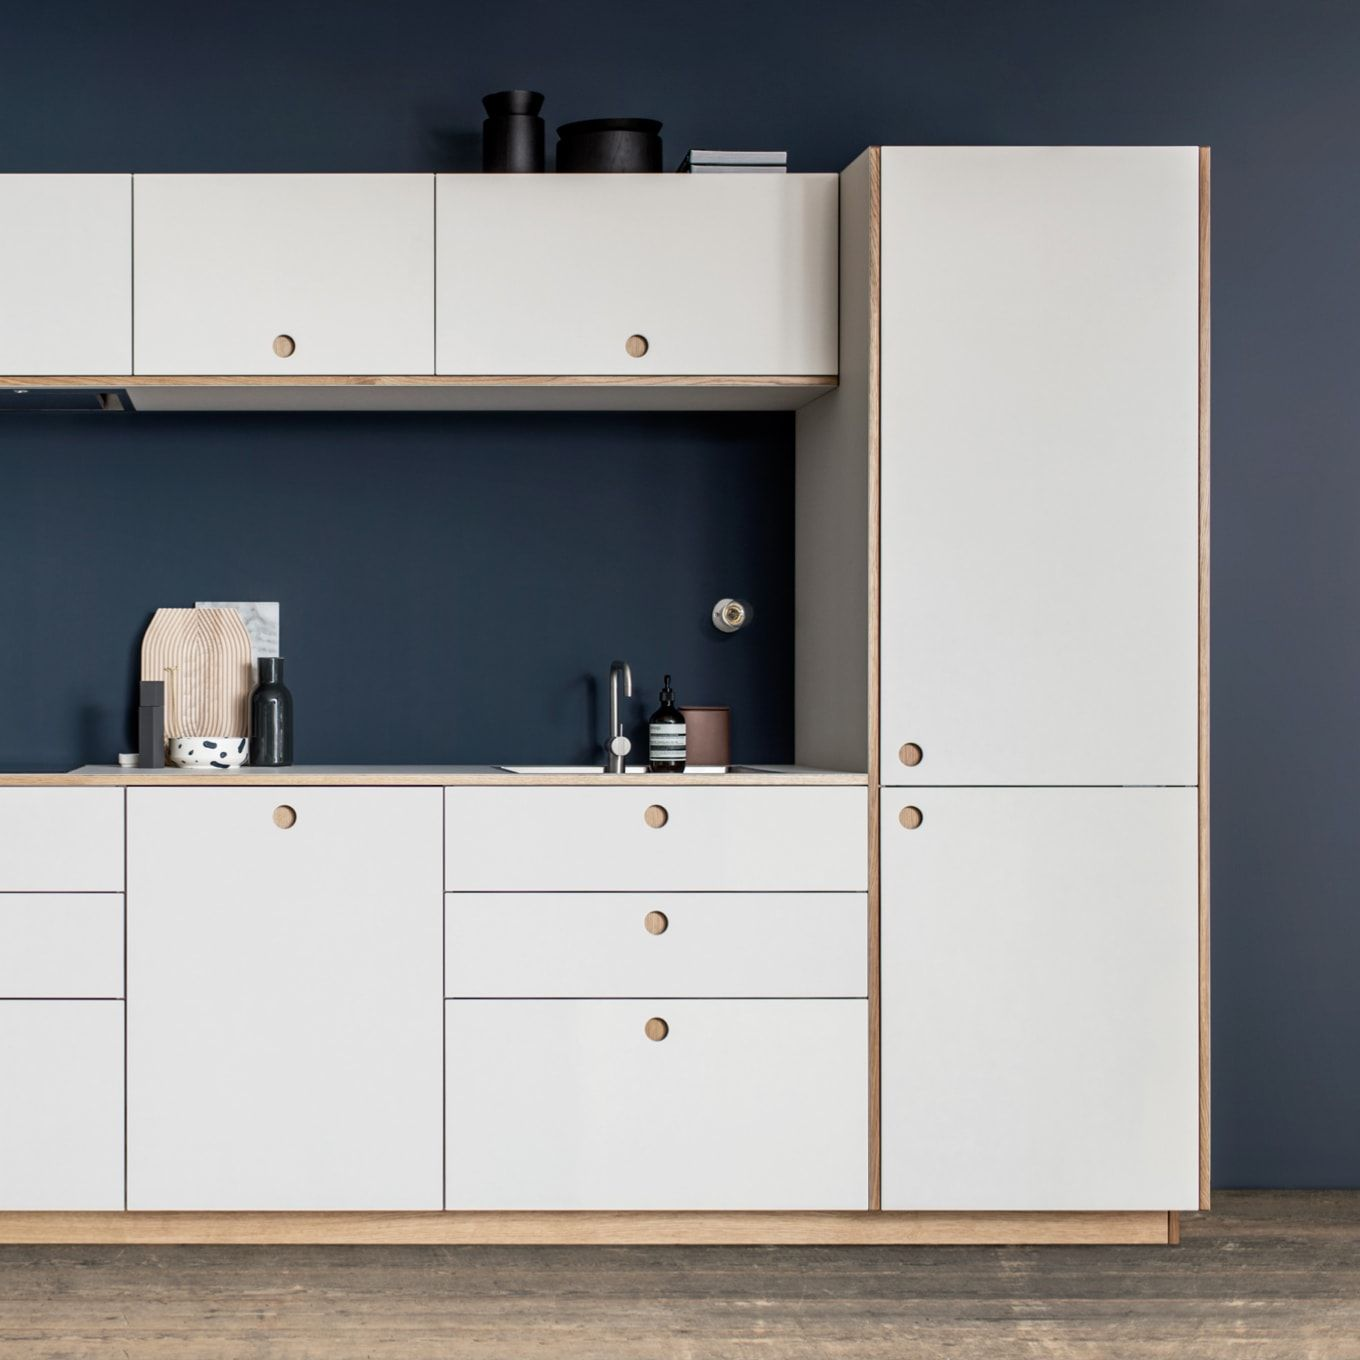 Ikea Küche Alternative Fronten Reform See And Read More About Our Basis Series Room